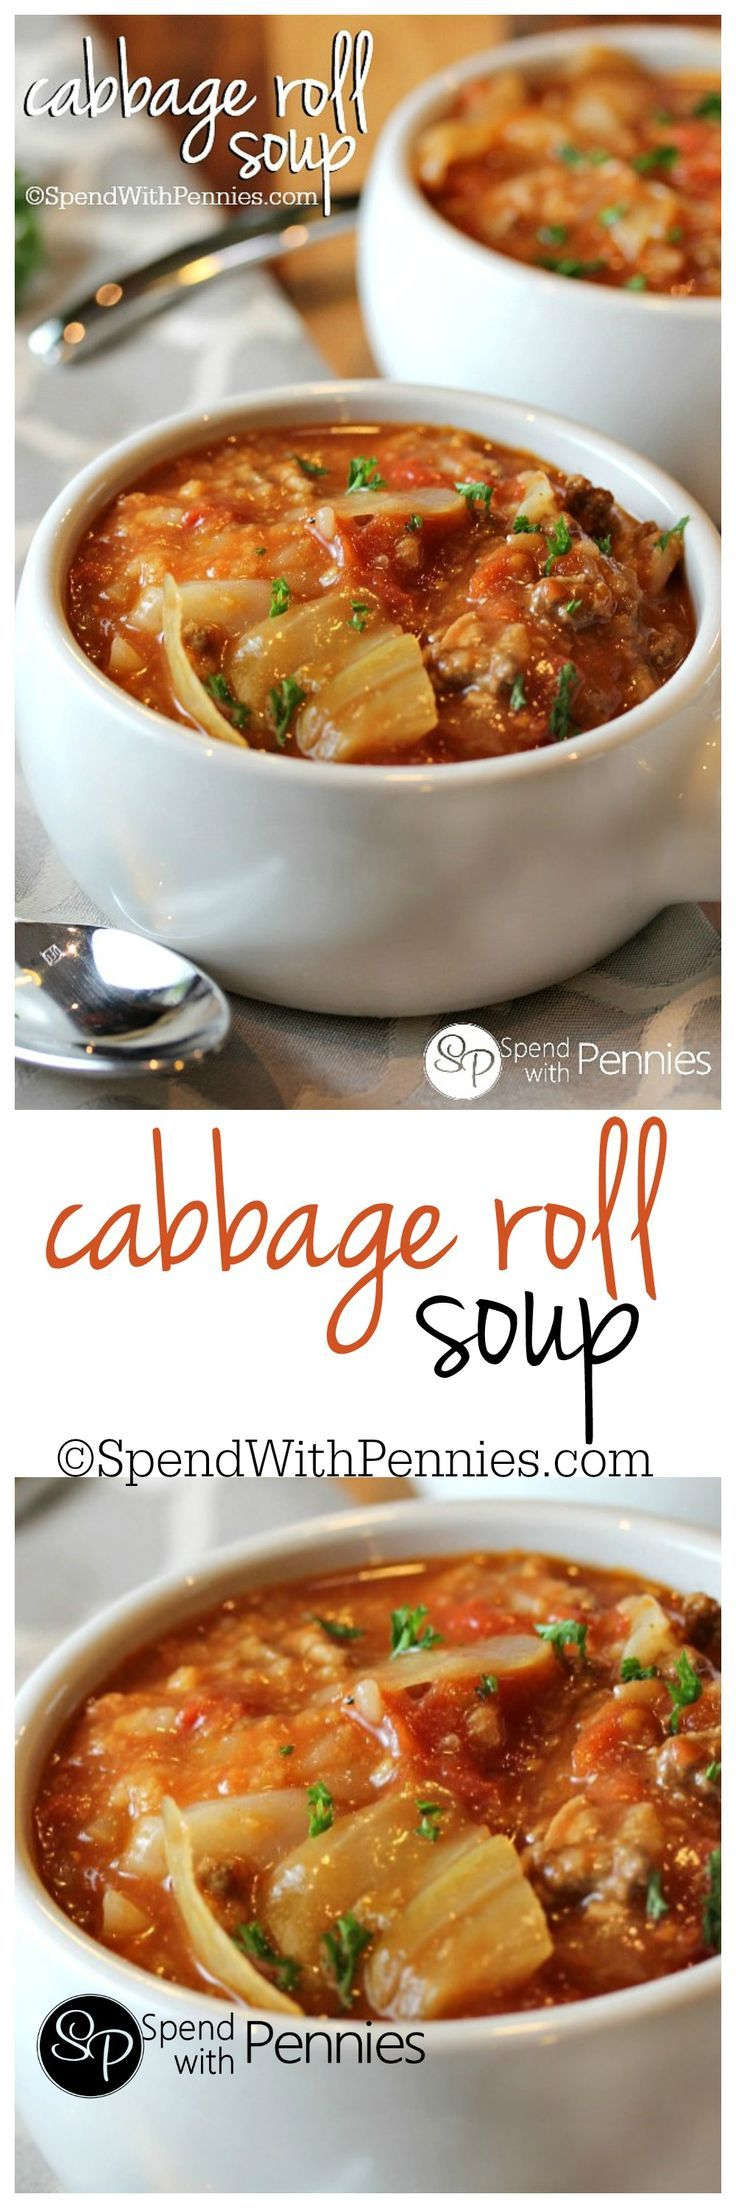 Cabbage Roll Soup - use sorghum flour instead of wheat flour to make it gluten free